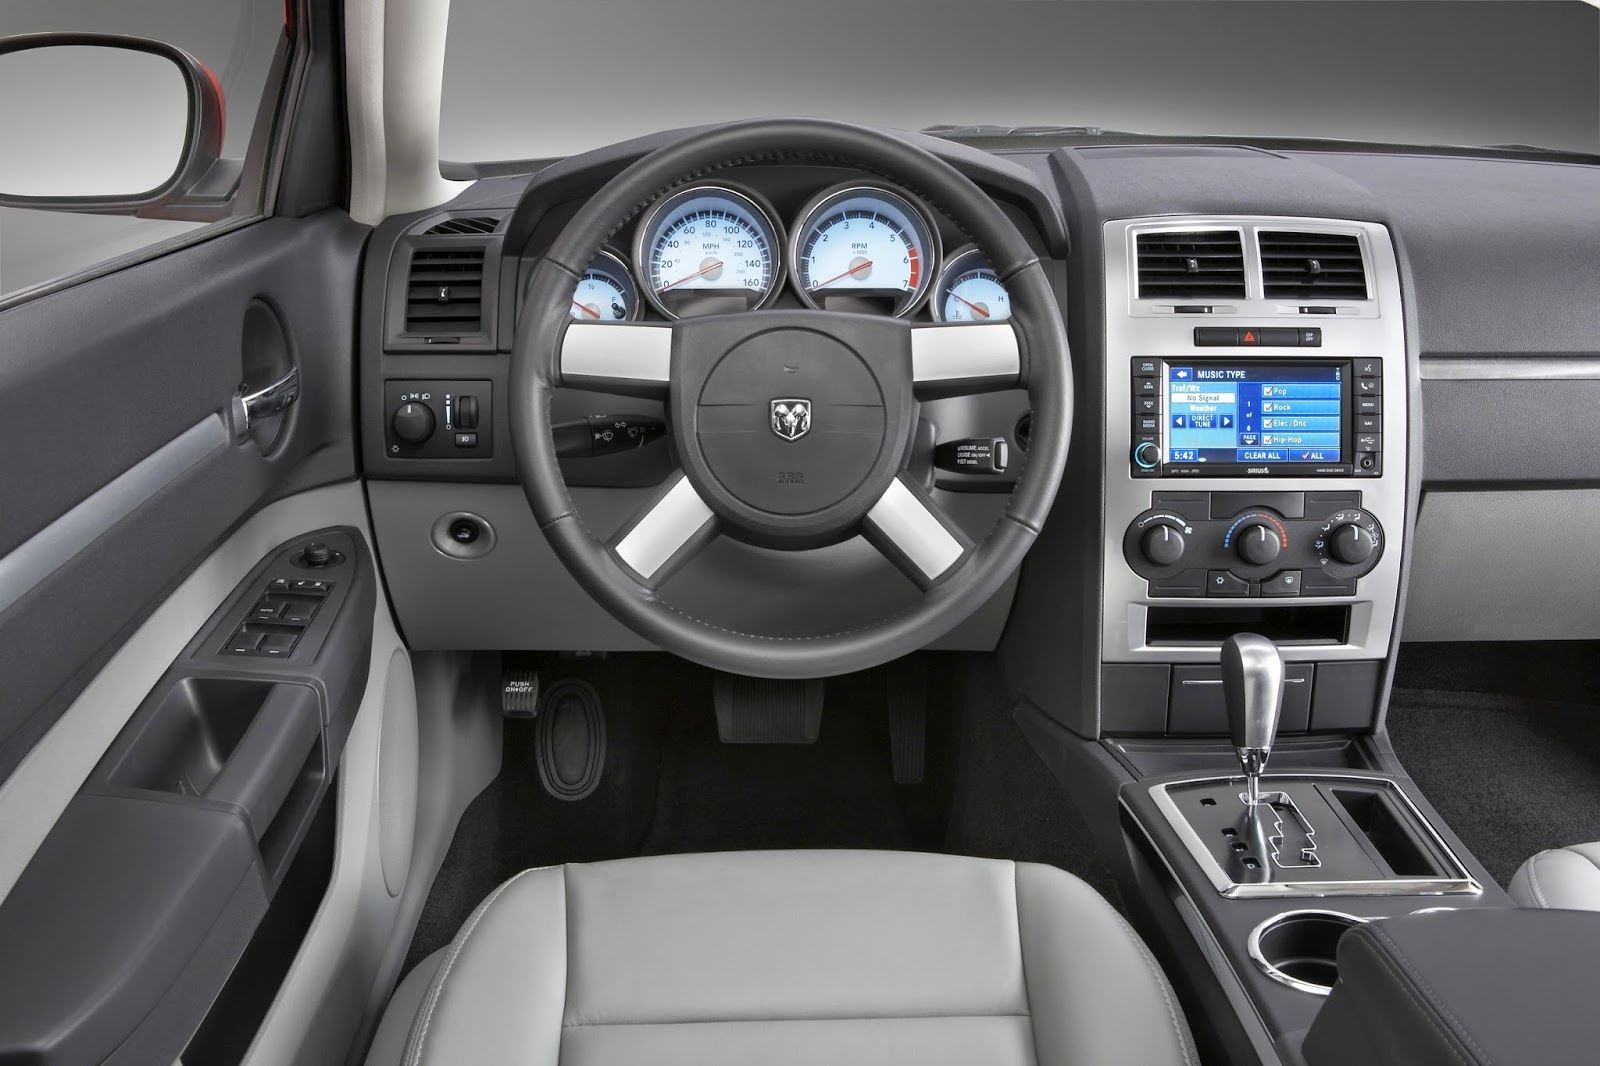 100 Years of Dodge History: 2000s | The Country Chrysler Blog